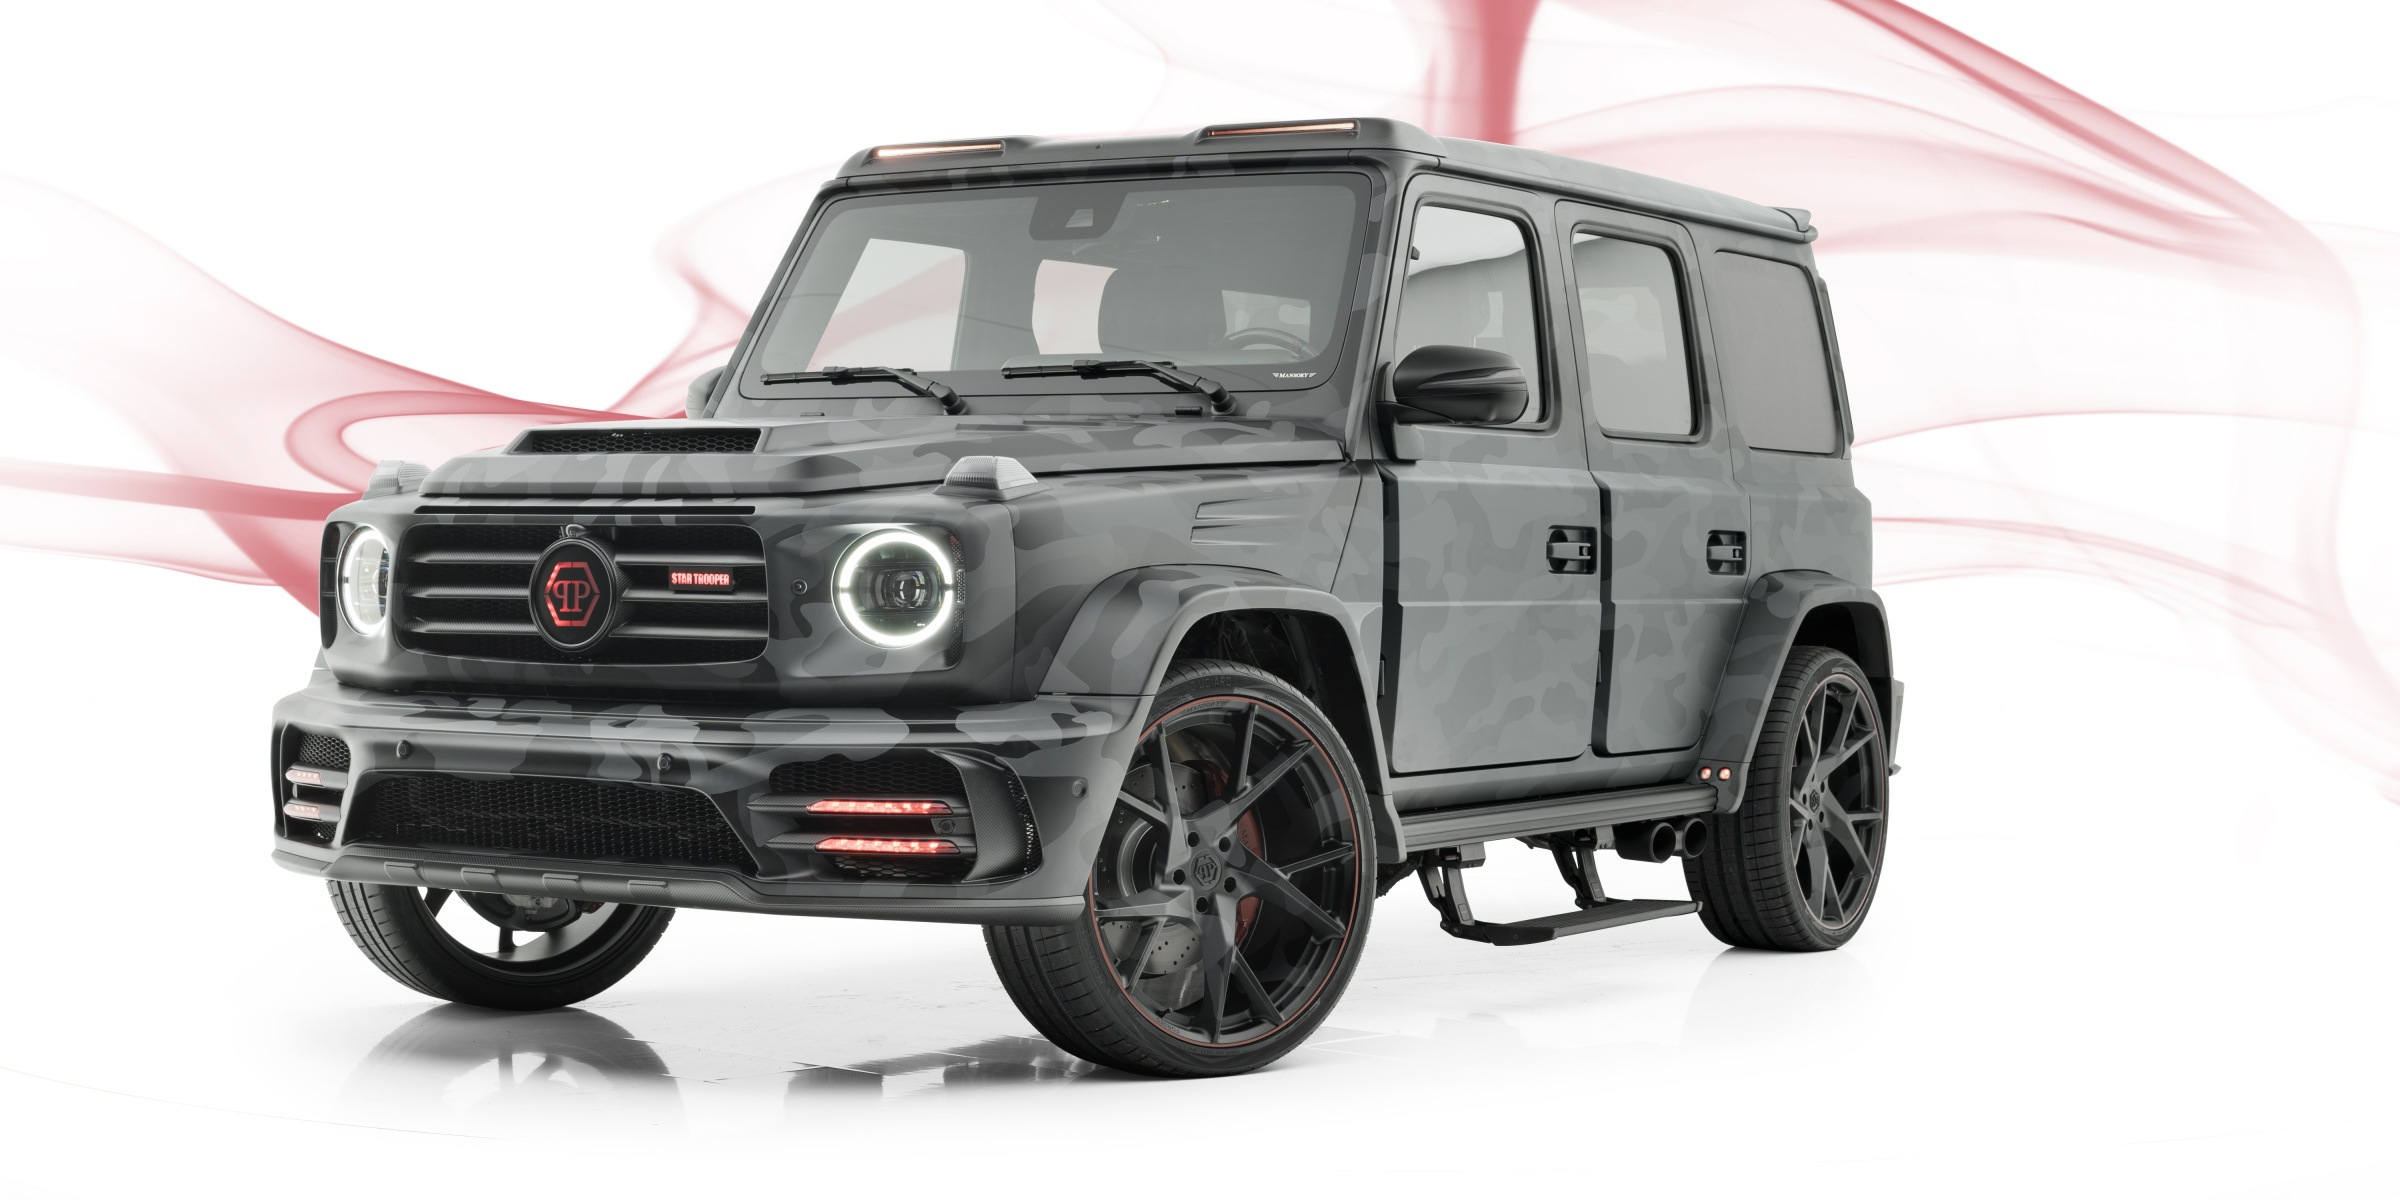 mansory_mercedes-benz_g-class_star_trooper_01.jpg